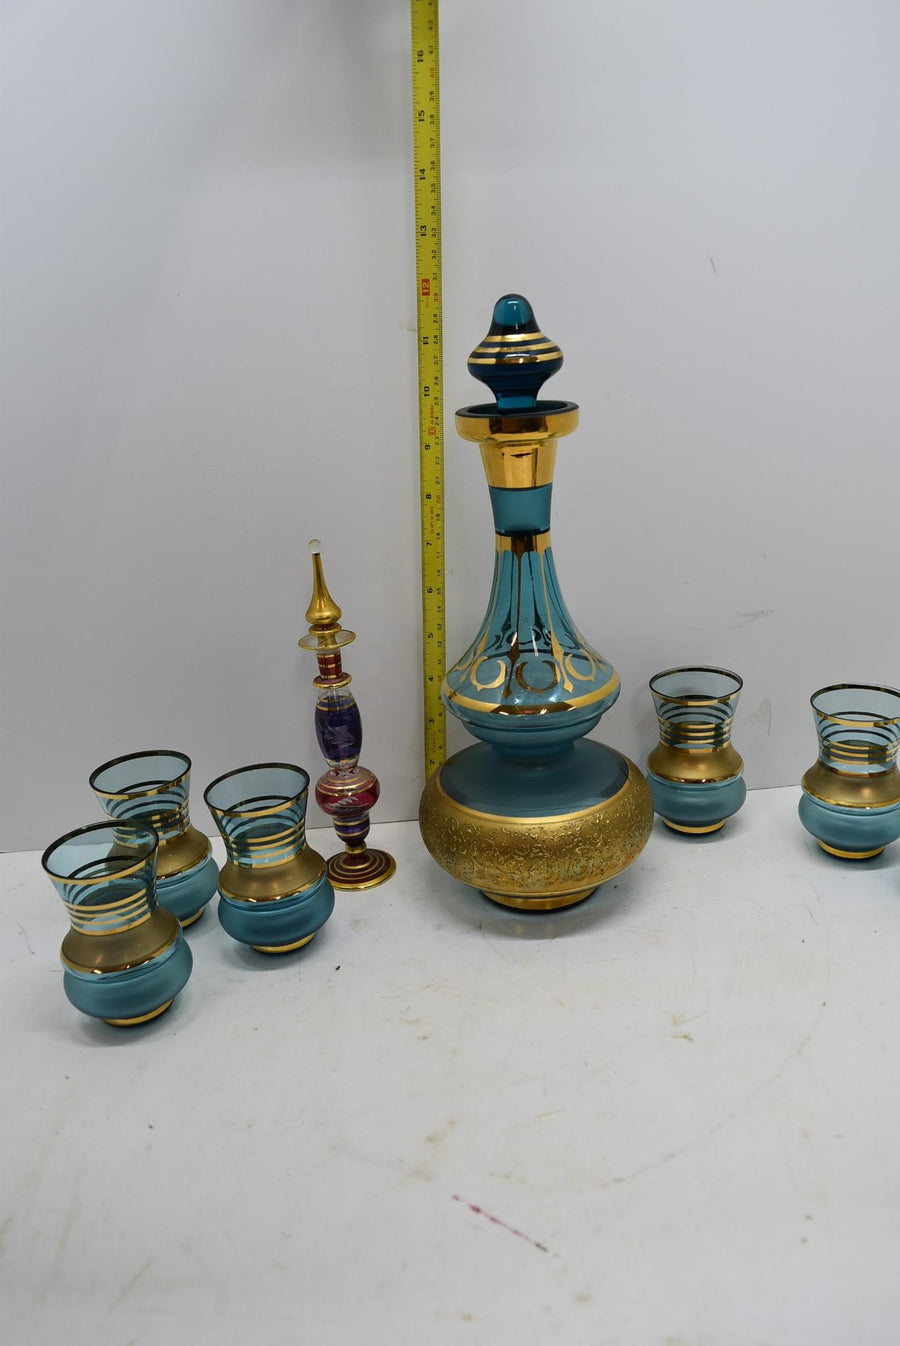 Vintage Gold Gilt Decanters with 6 Matching Shot Glasses Bohemian Glass Decor